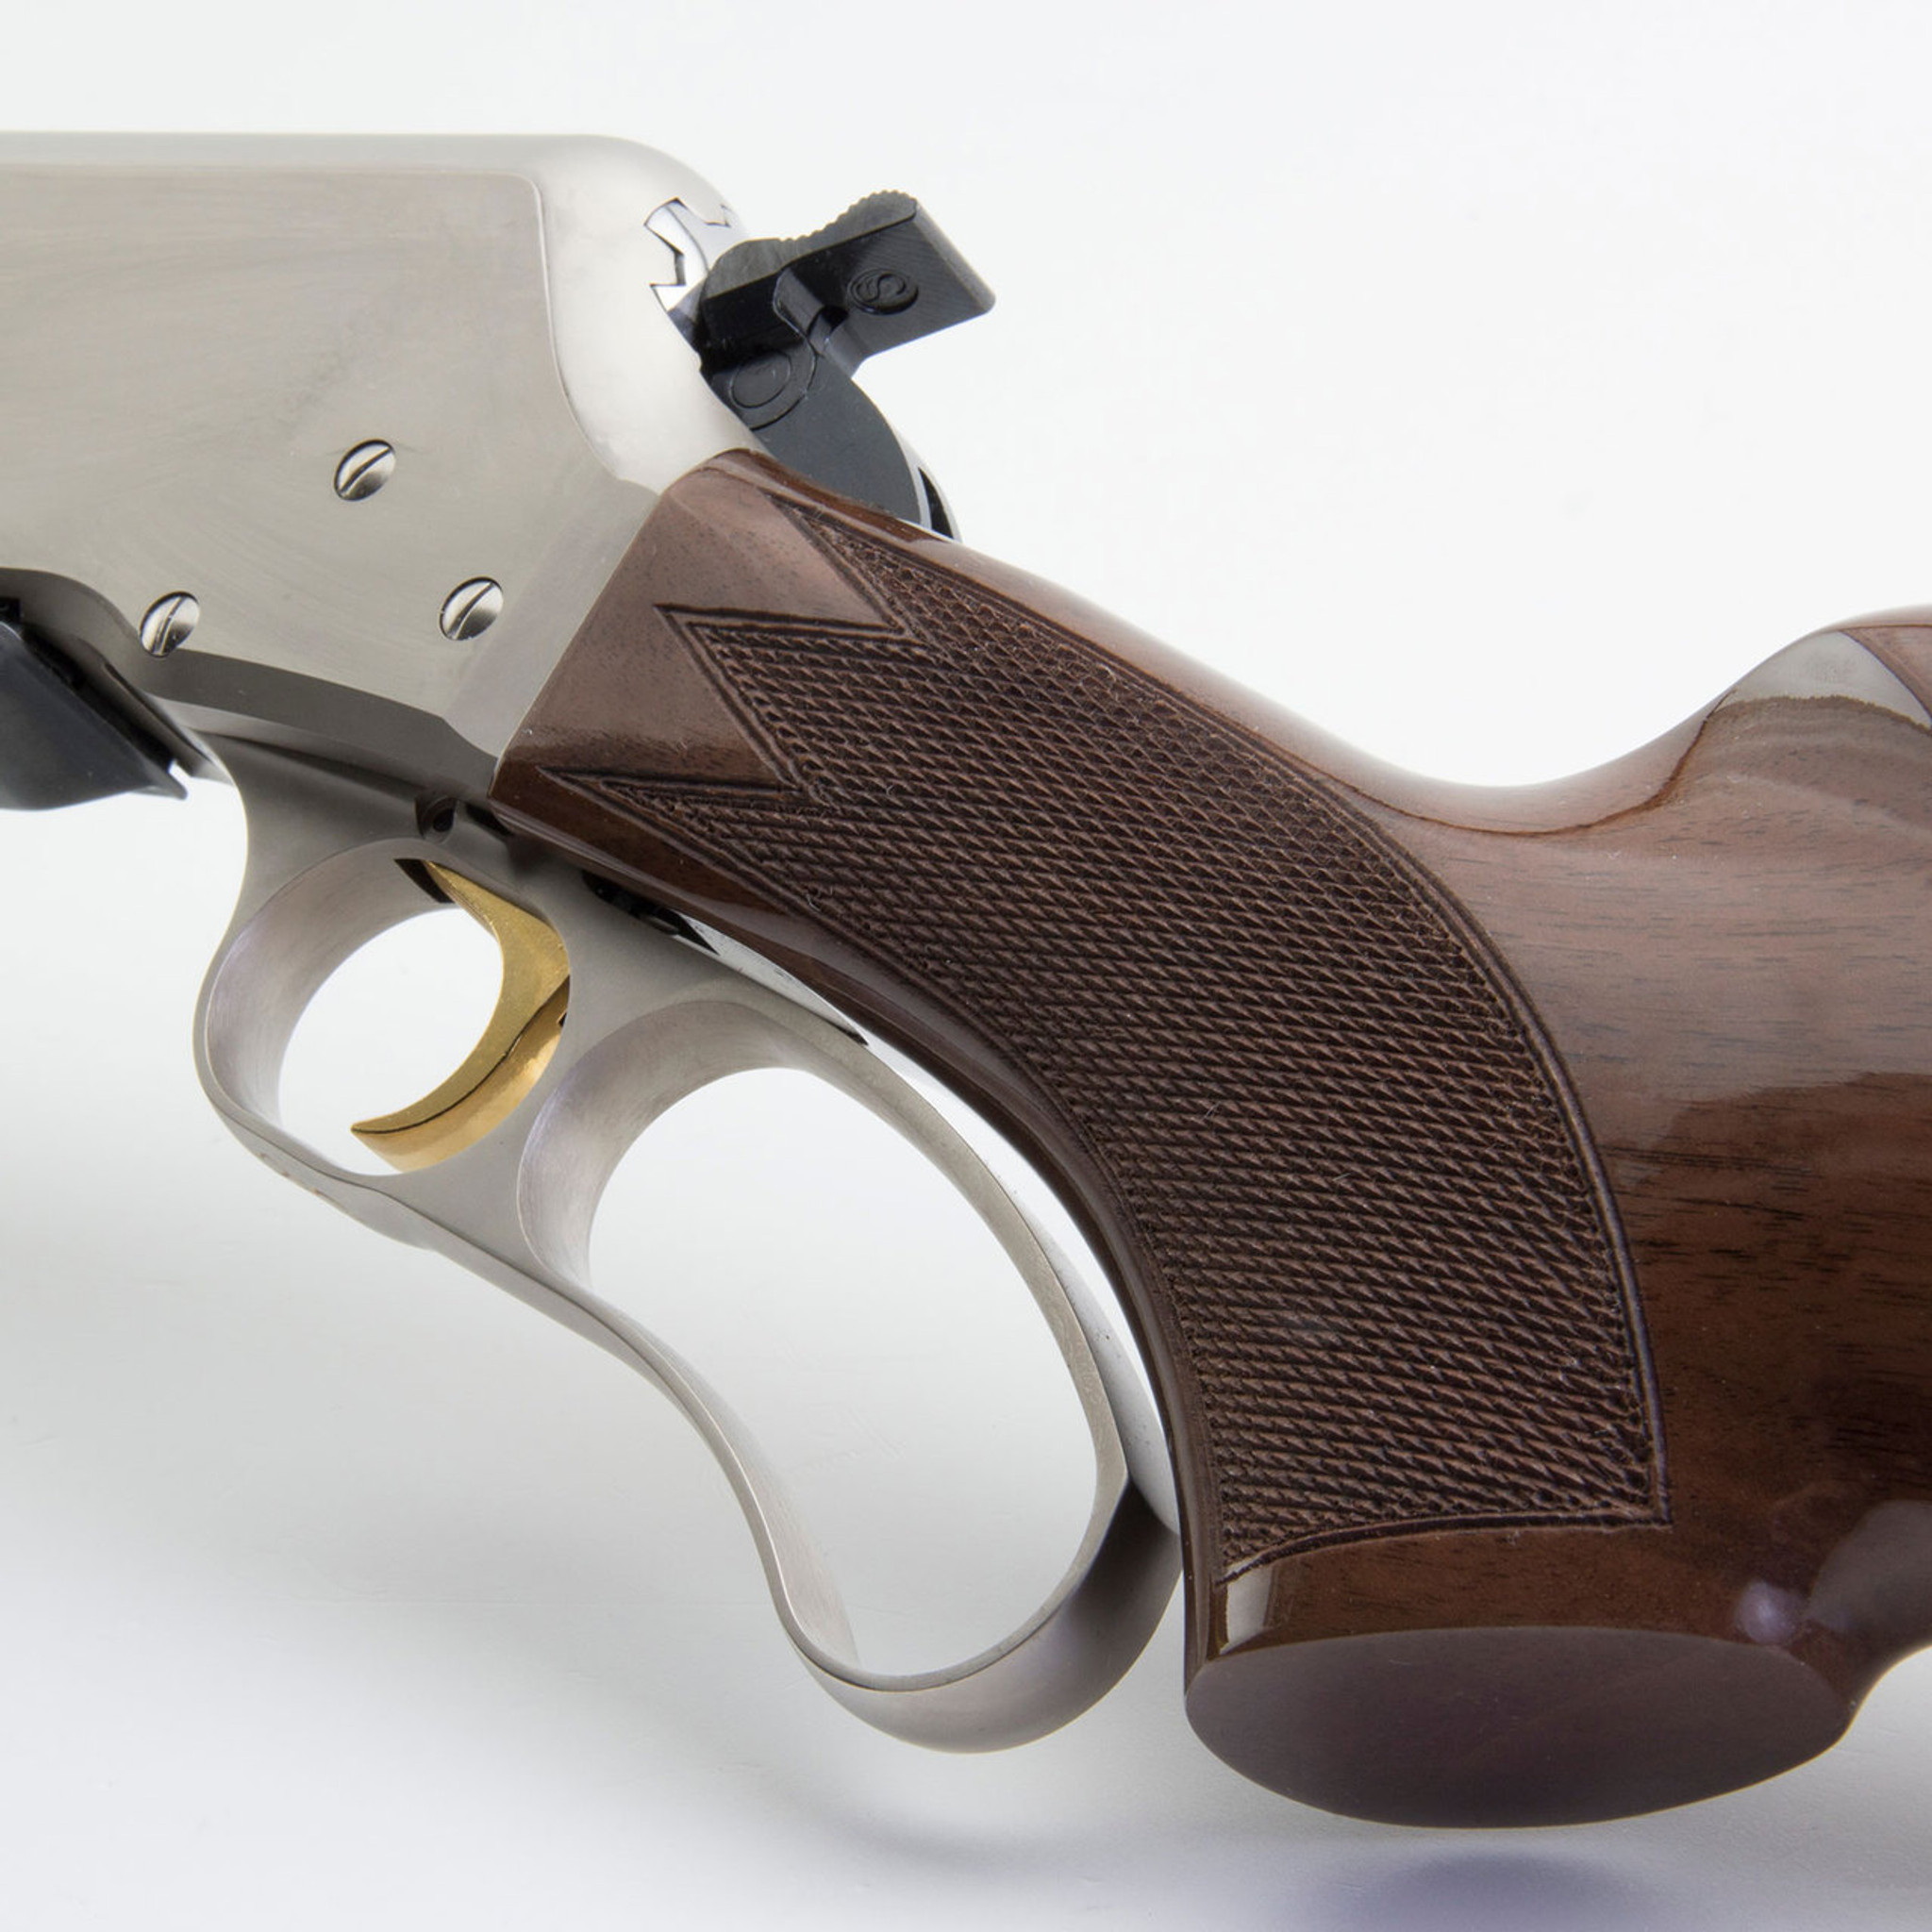 BROWNING BLR LIGHTWEIGHT STAINLESS PG 243 - Heights Outdoors